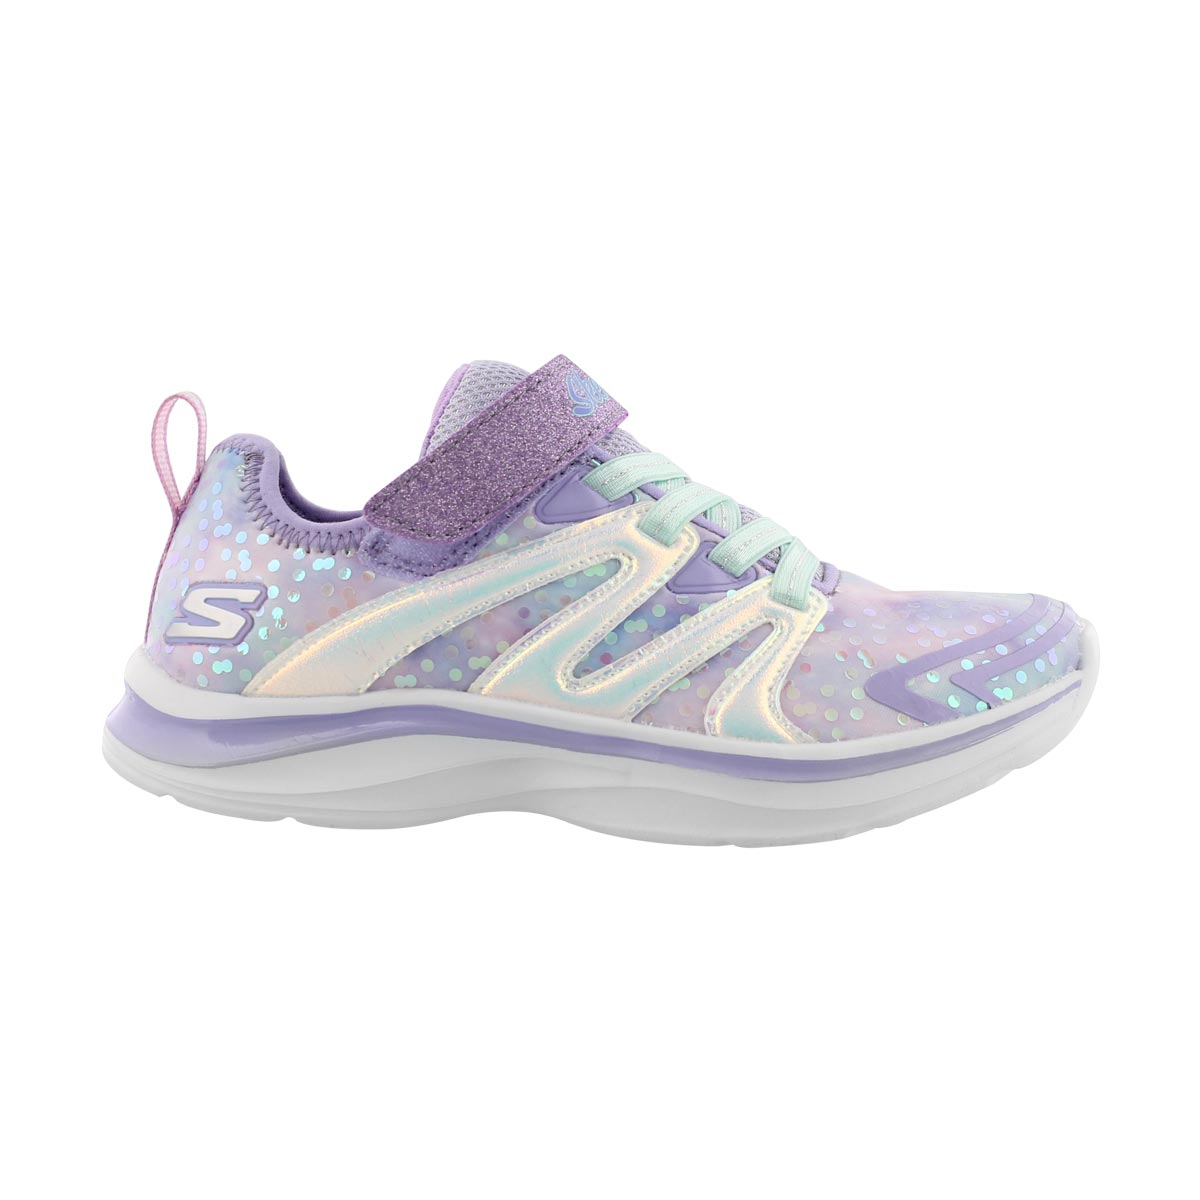 Grls Double Dreams lvndr mlti sneaker